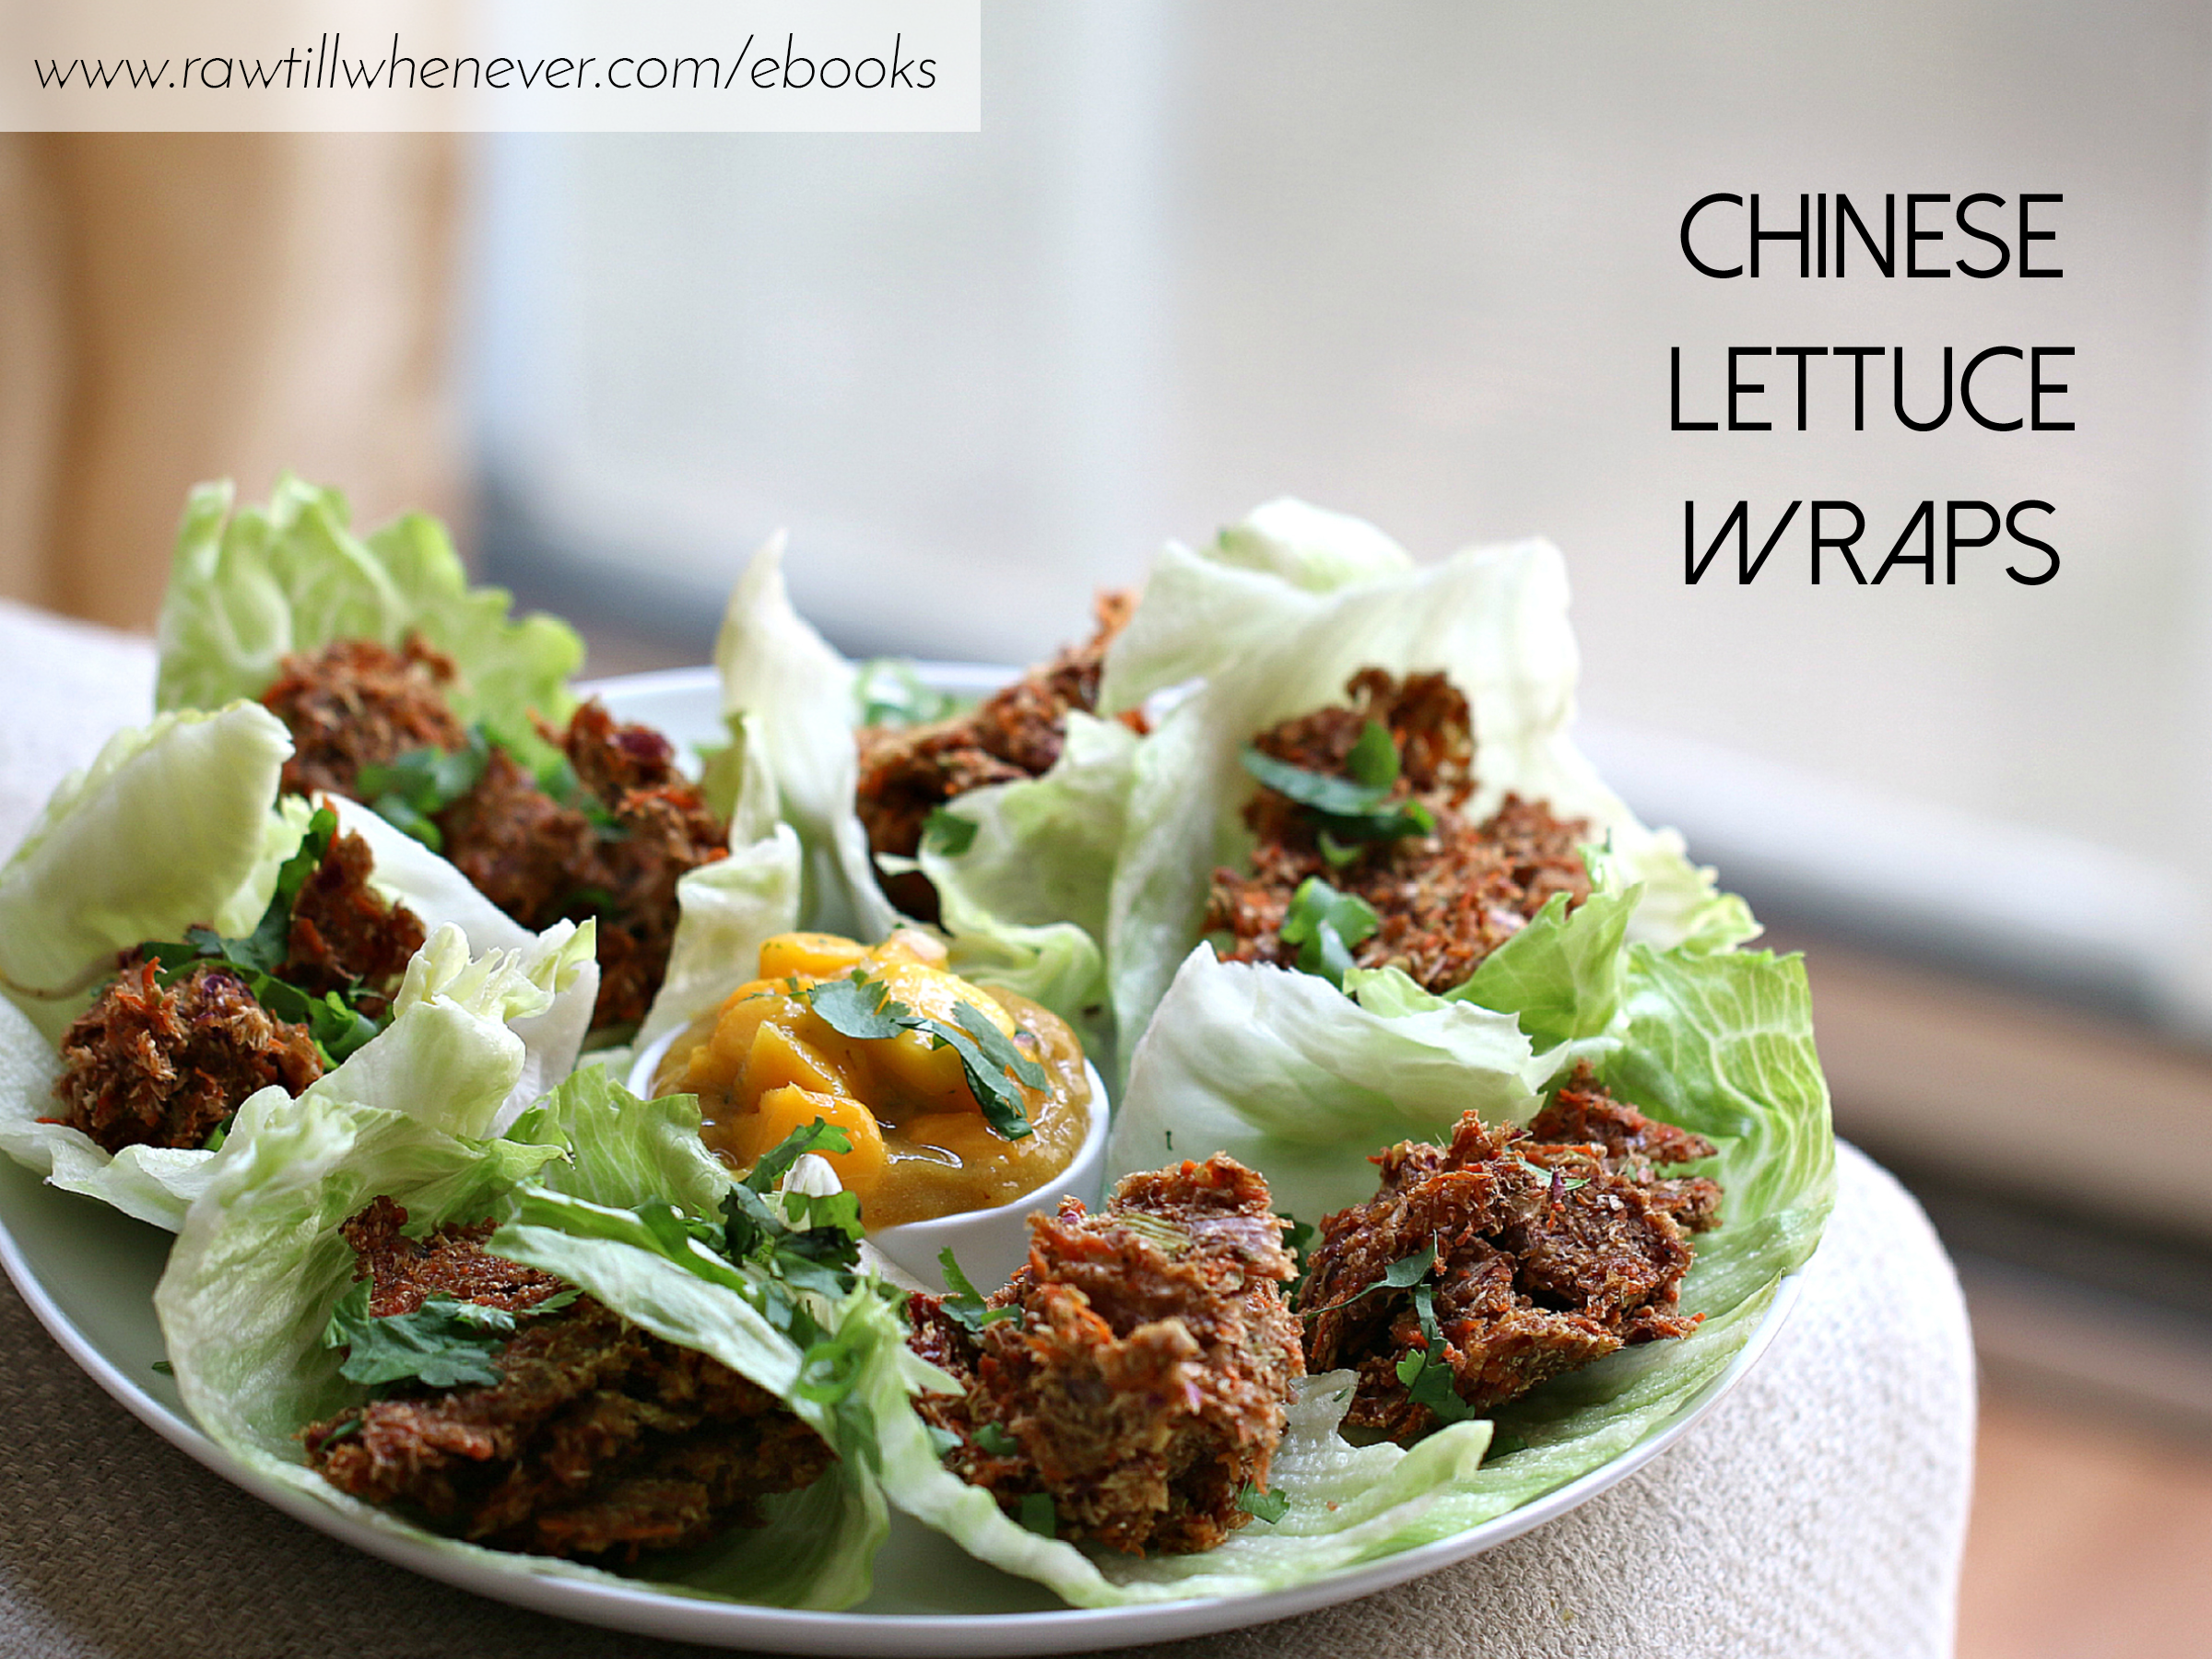 Chinese lettuce wraps recipe featured from my raw vegan recipe book chinese lettuce wraps recipe featured from my raw vegan recipe book ilikeitraw forumfinder Gallery